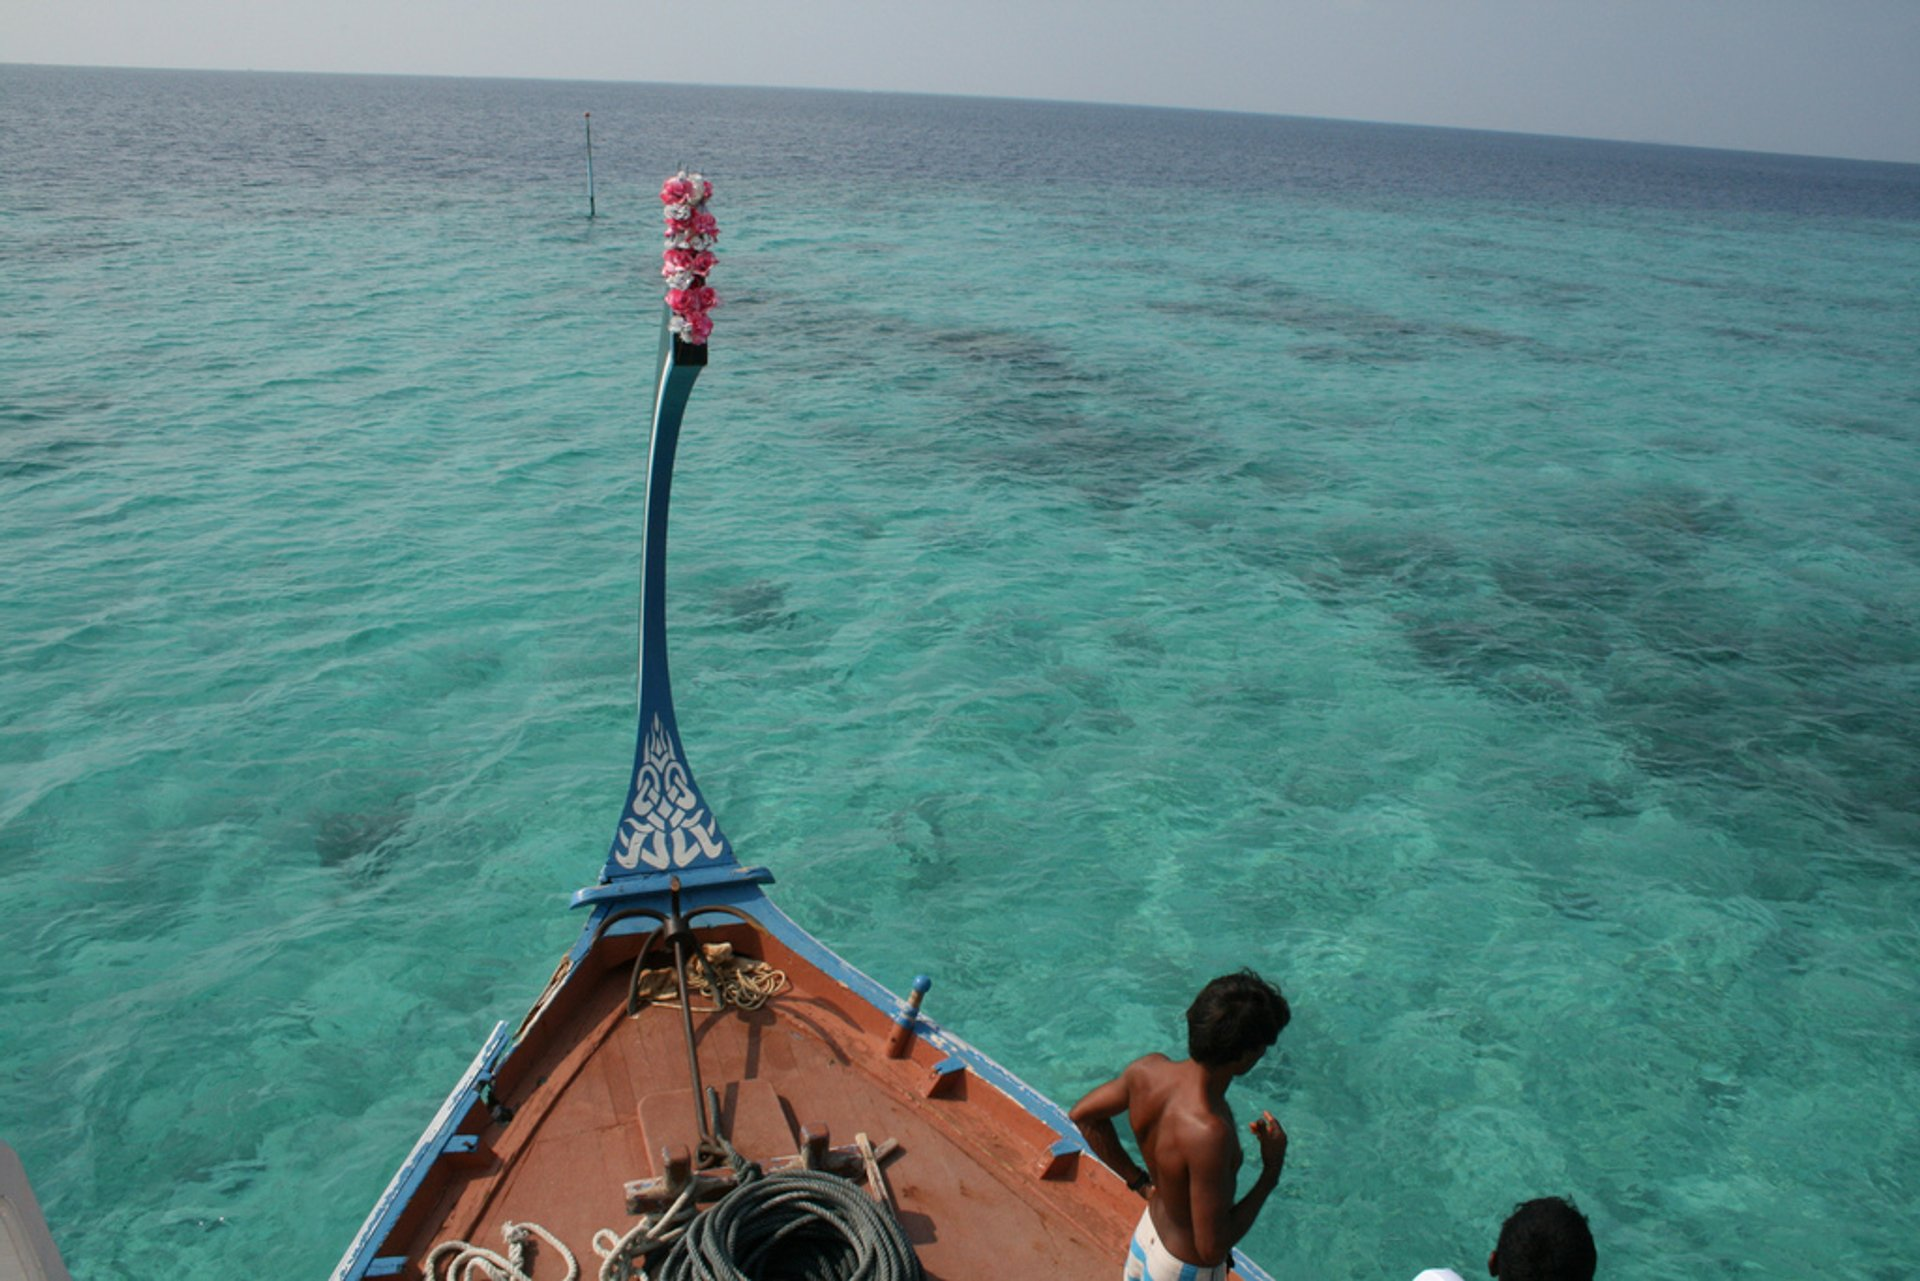 Boating in Maldives 2020 - Best Time